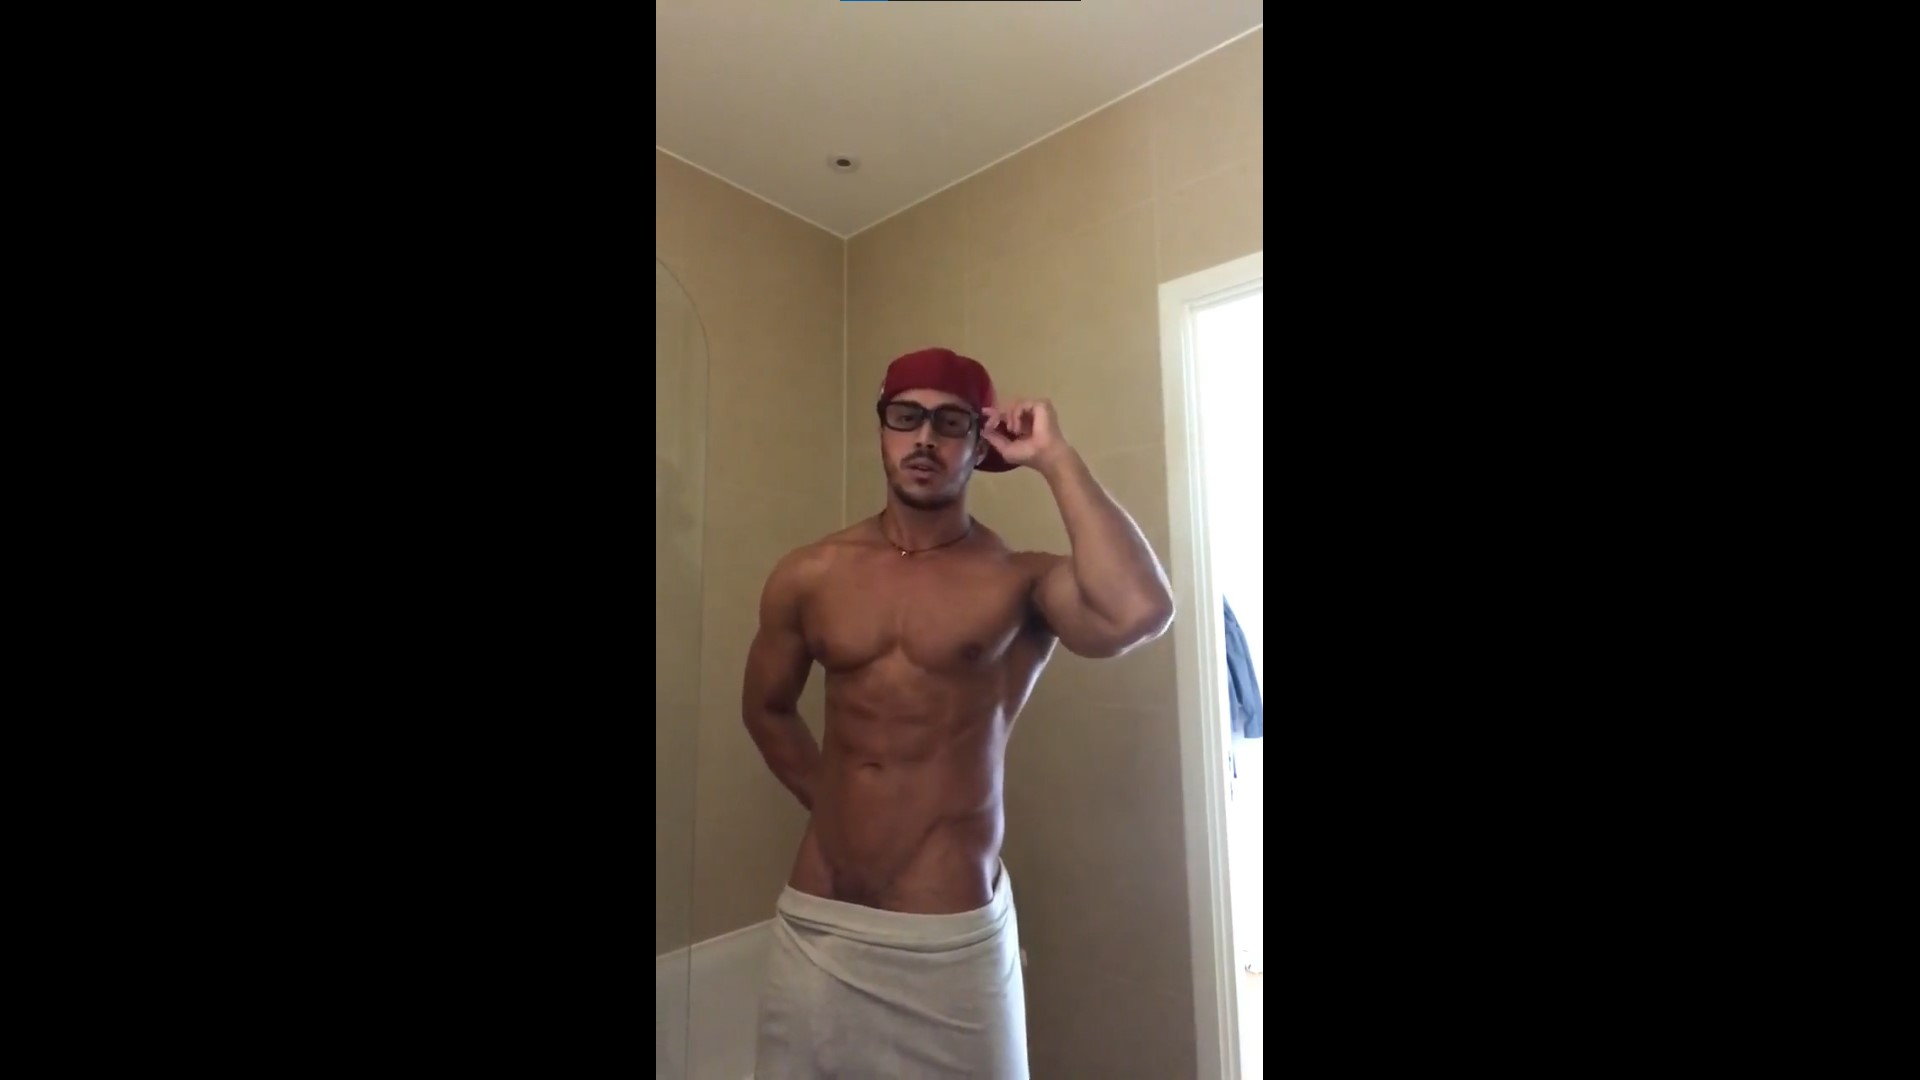 Showing off my body and being a tease after a shower - Diego Barros